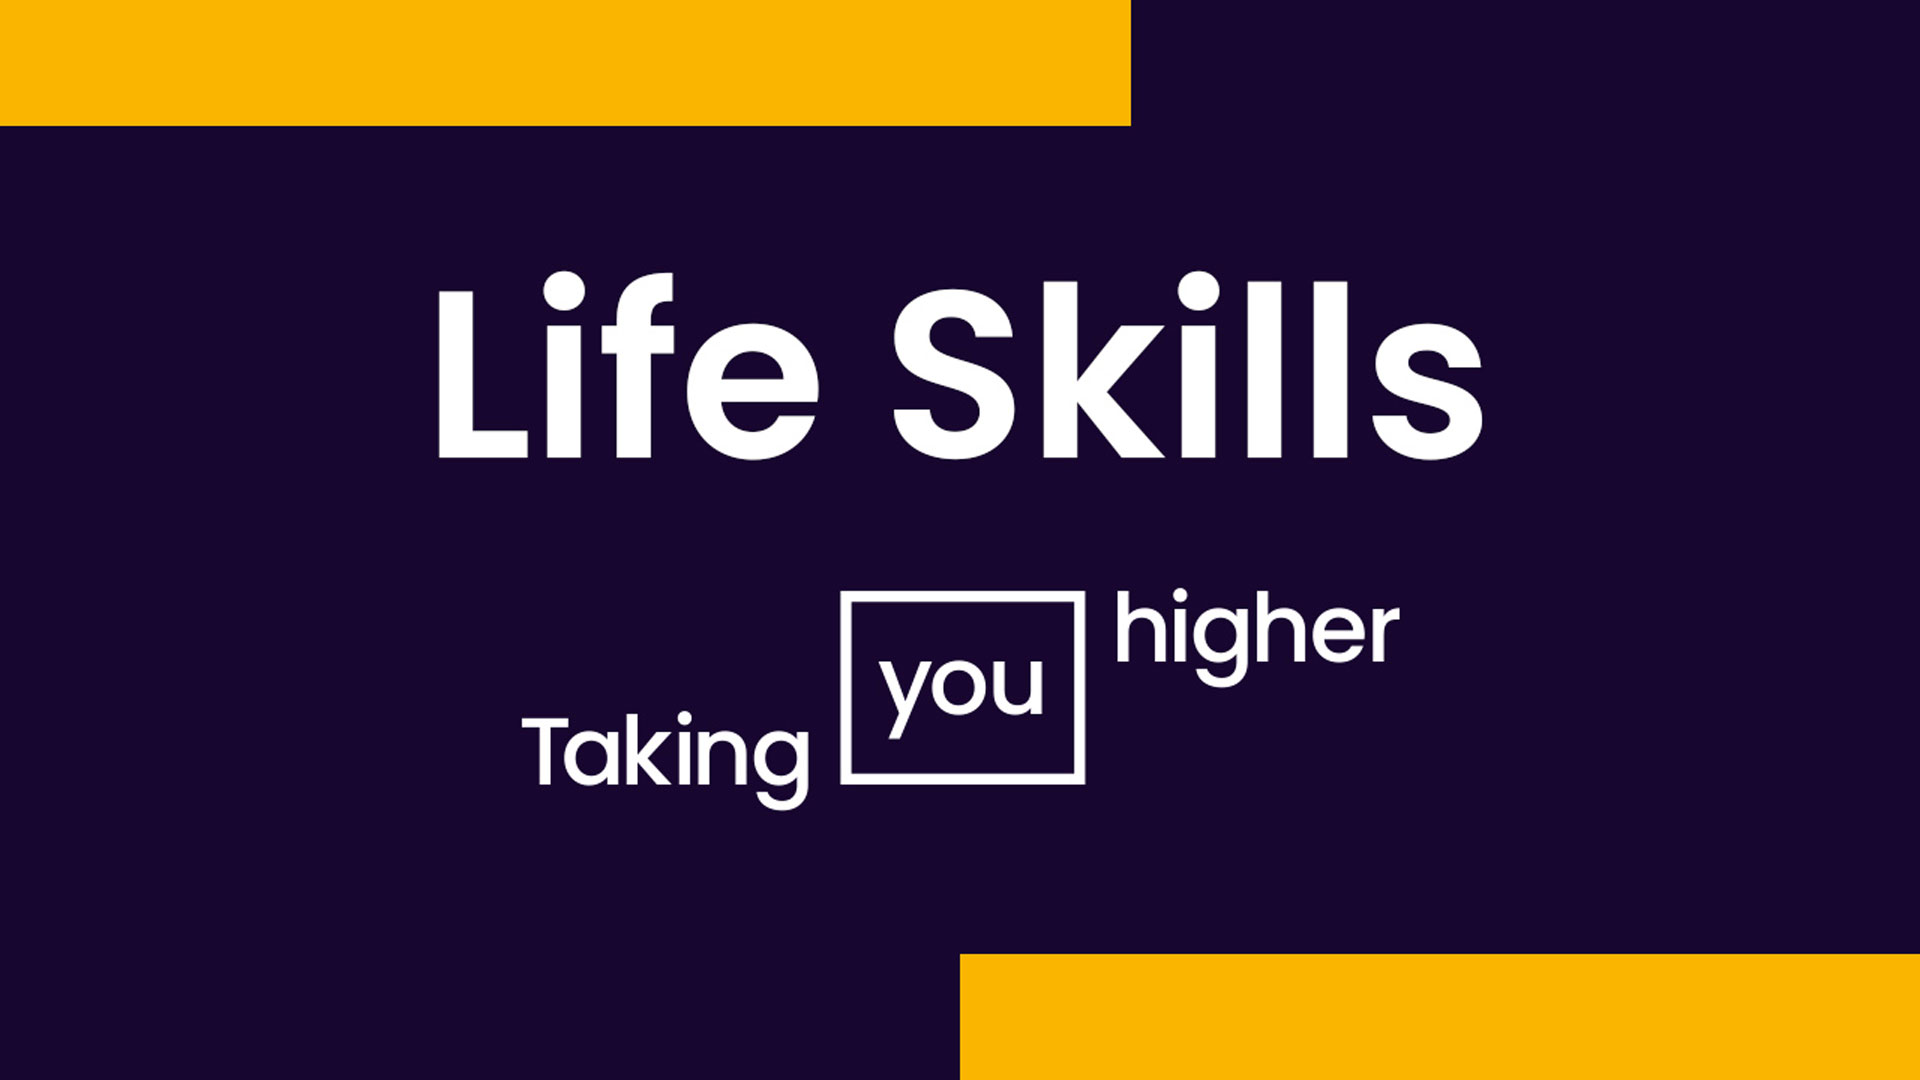 Middlesbrough College Life Skills Courses